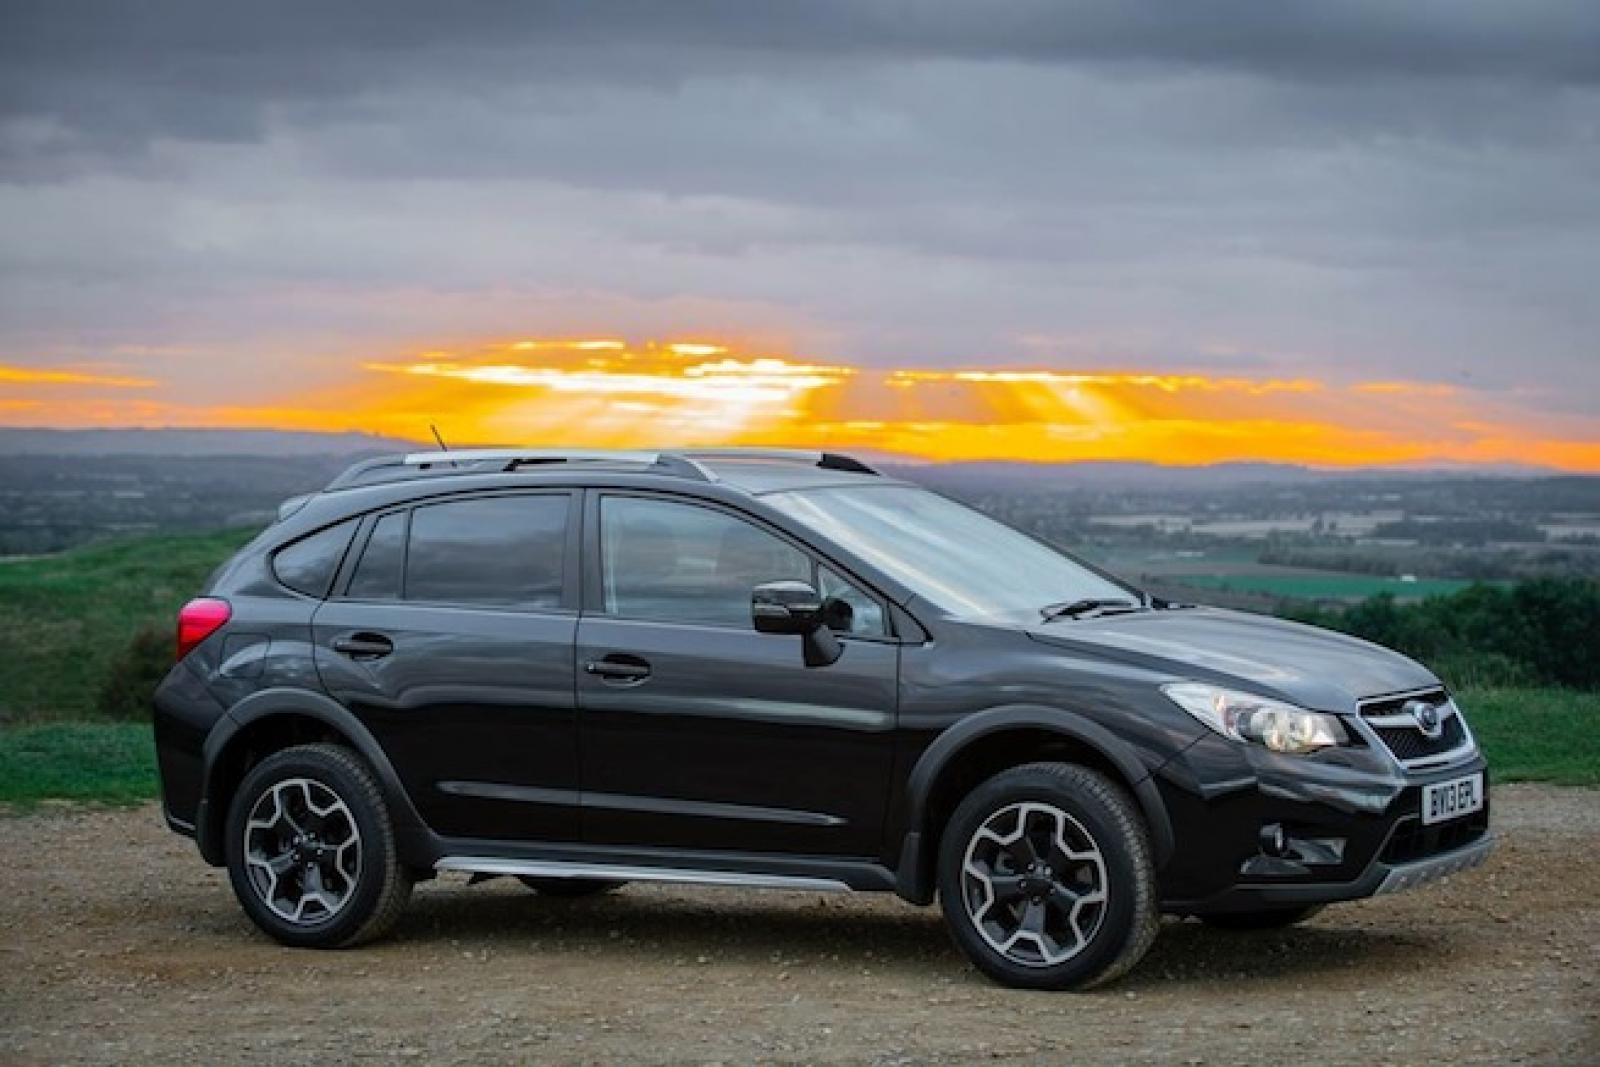 2015 subaru xv crosstrek information and photos zombiedrive. Black Bedroom Furniture Sets. Home Design Ideas